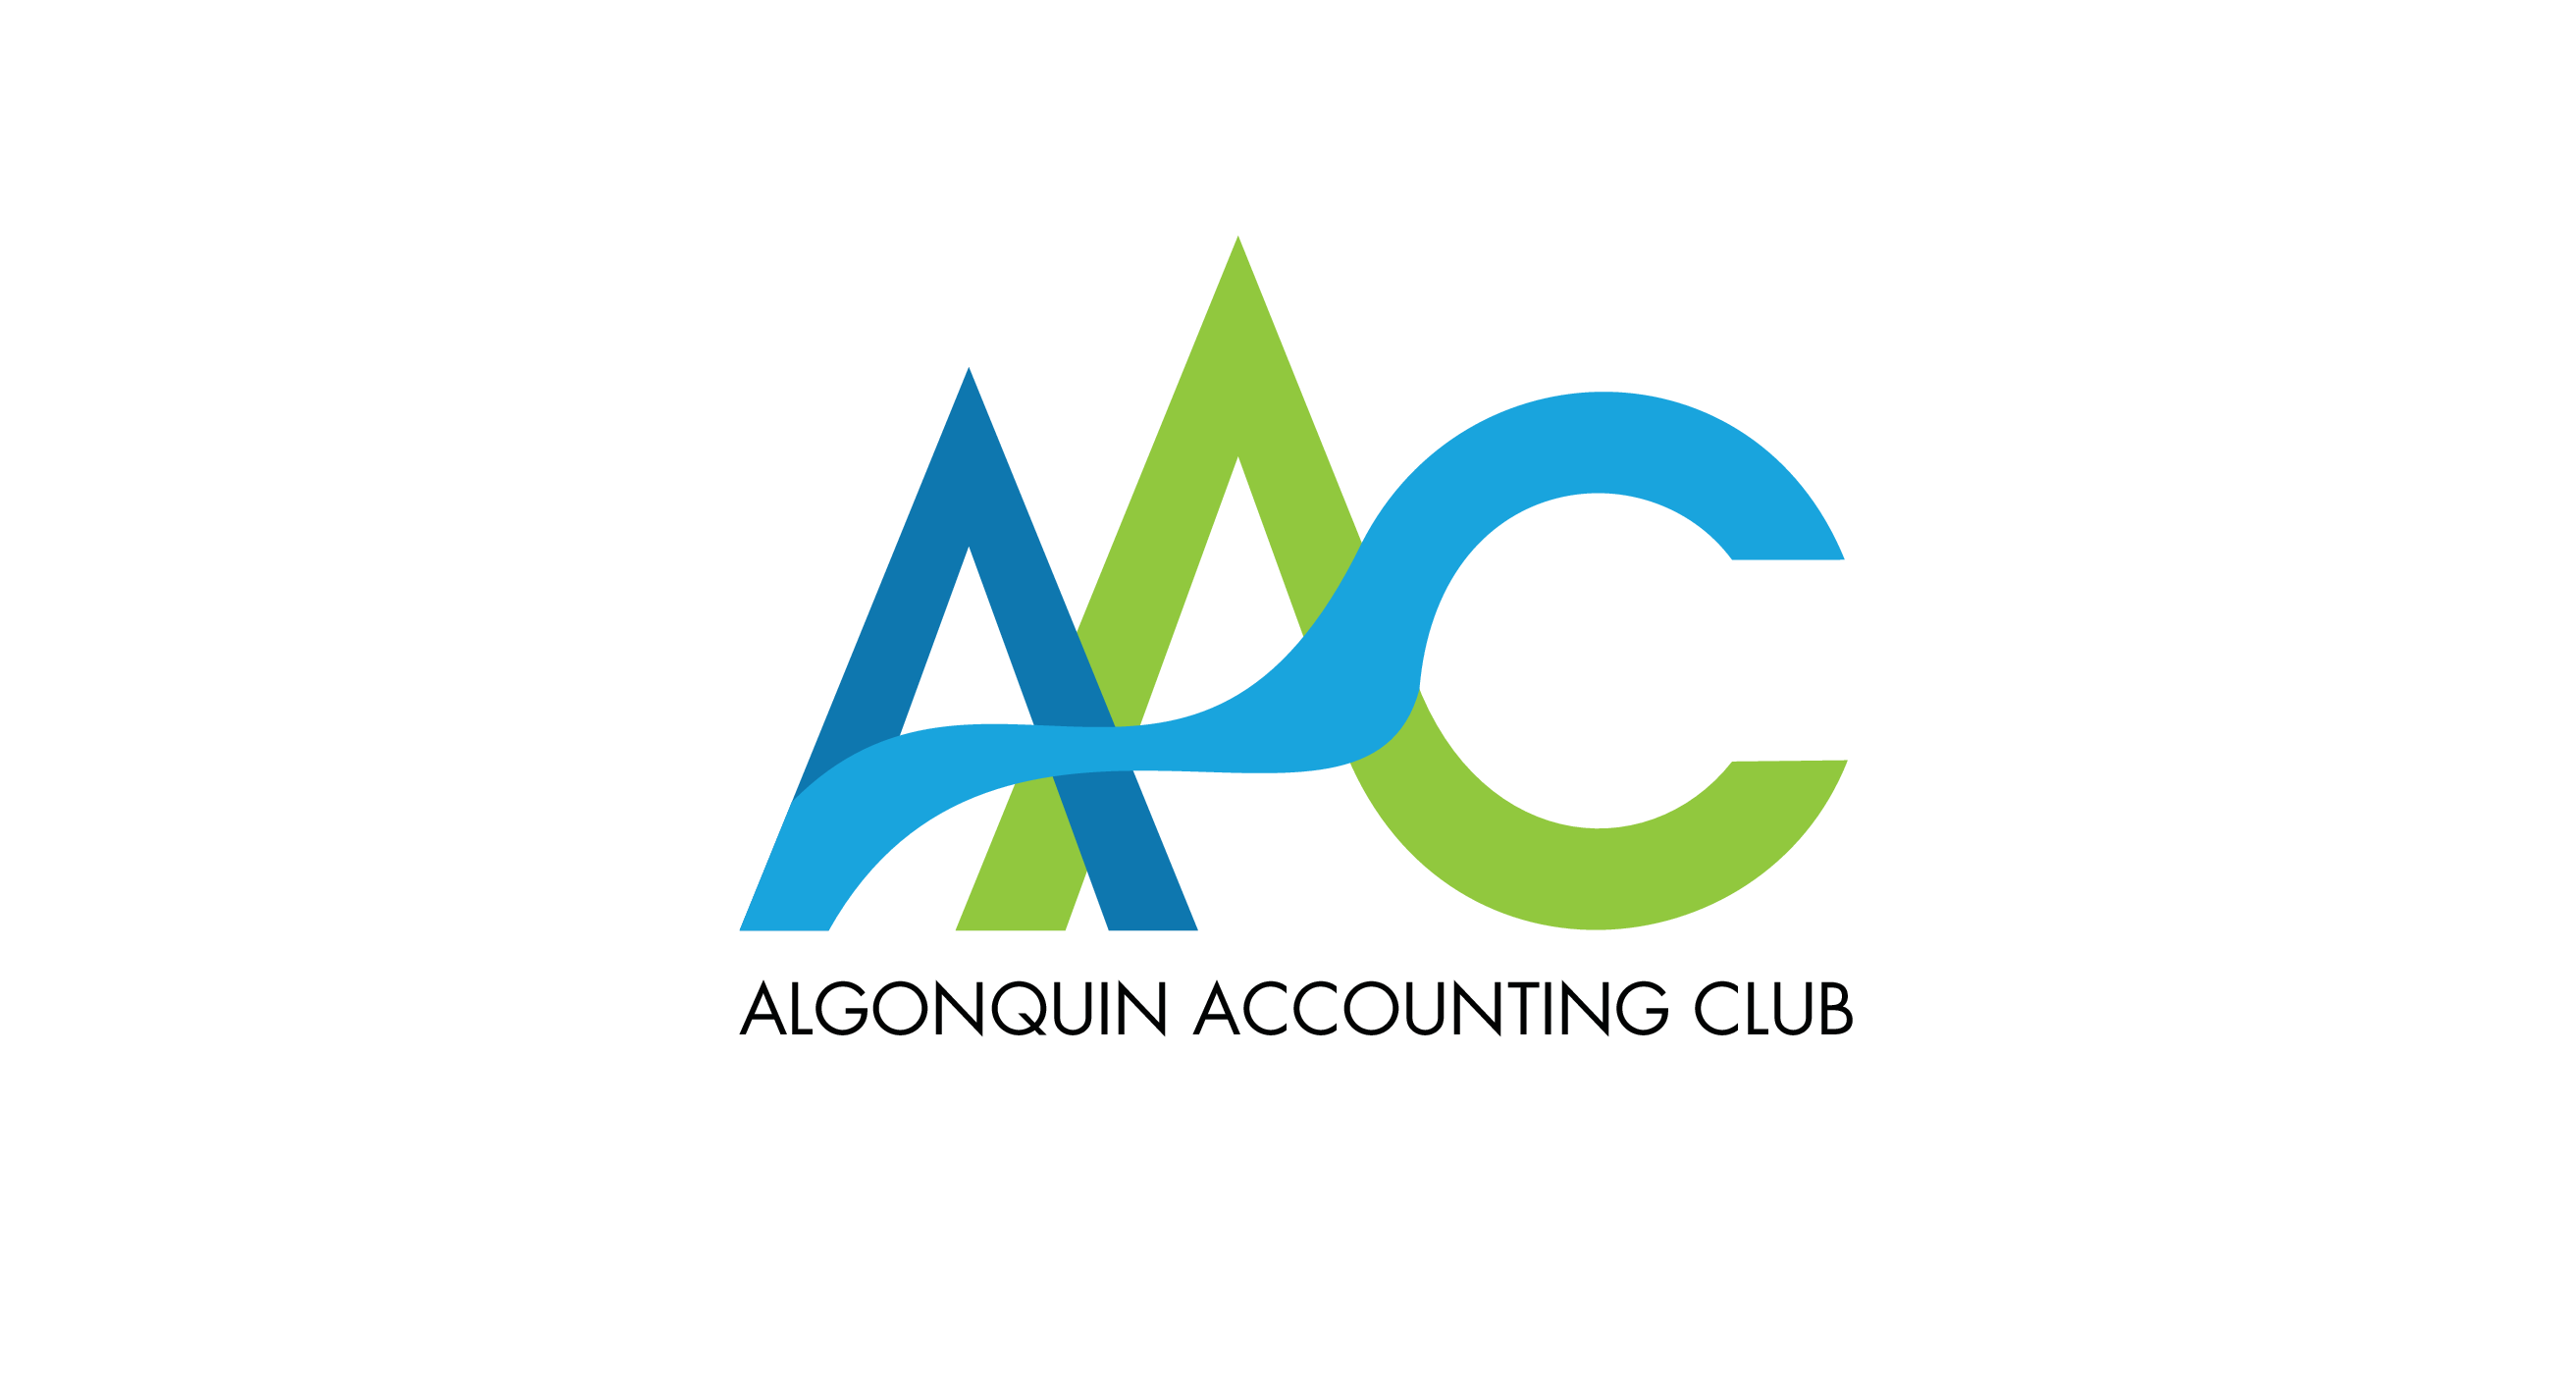 Accounting Club - Aac Logo PNG